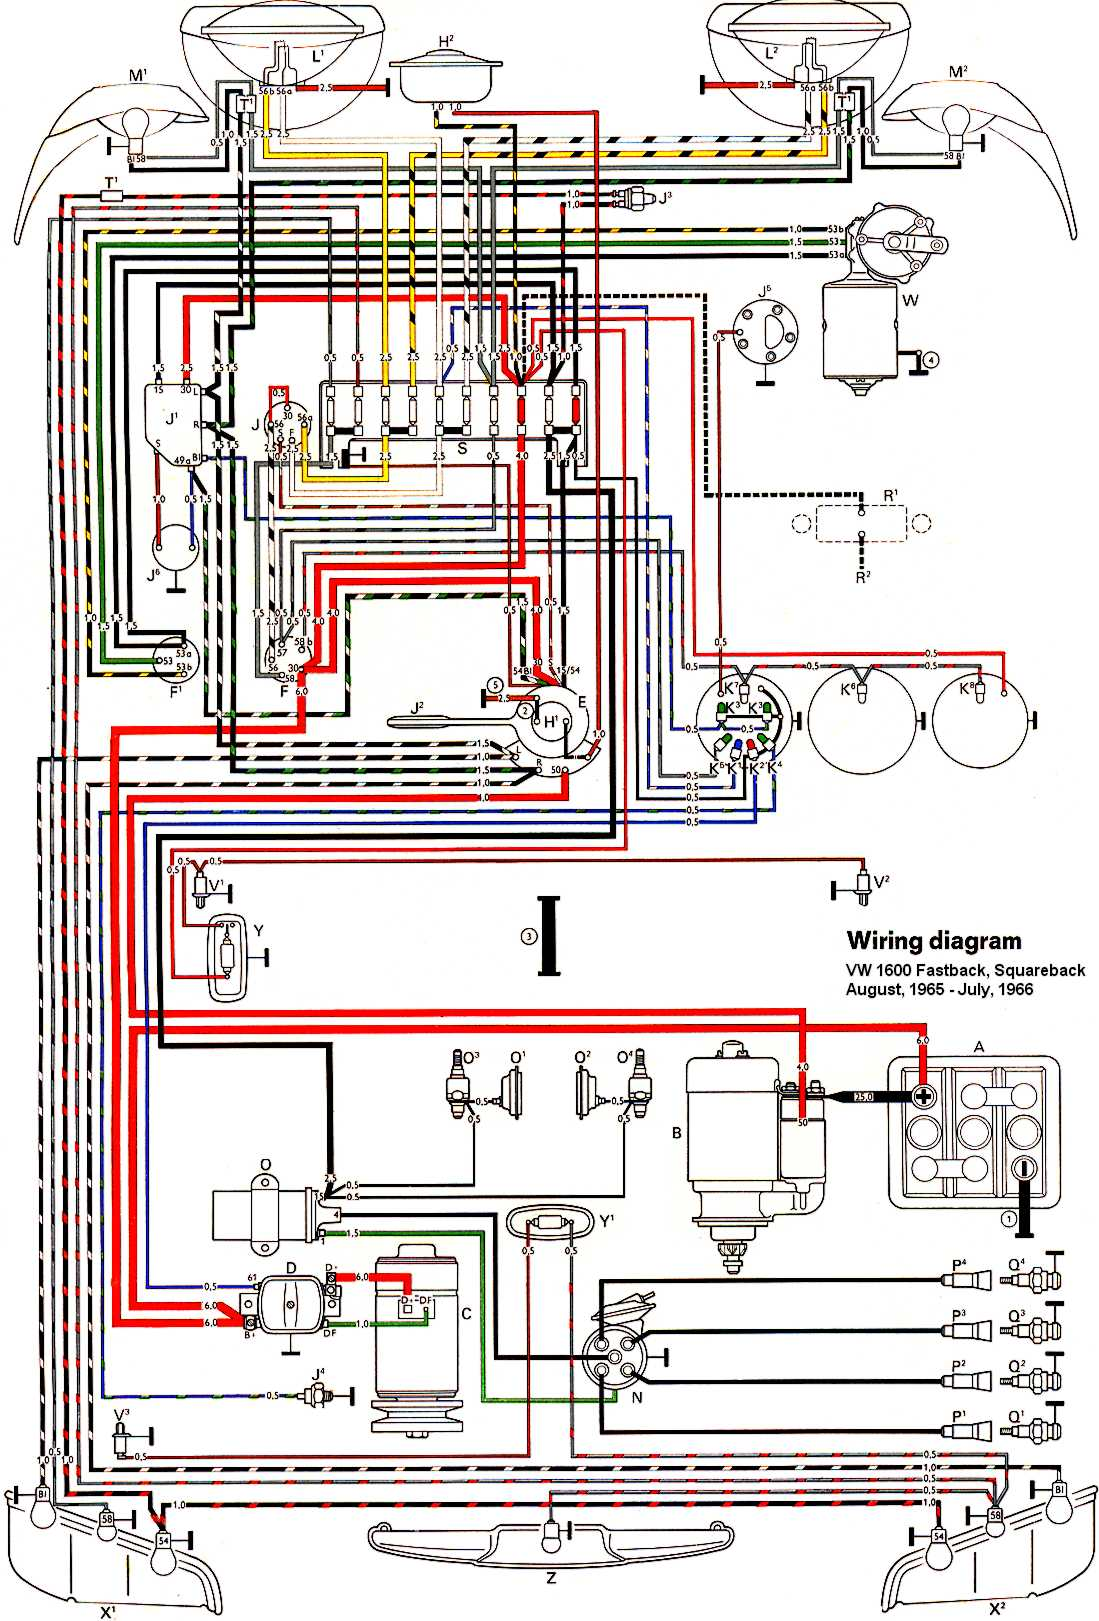 71 Vw Beetle Wiring Diagram Just Another Blog Fuse Block Volkswagen Type 3 Schema Diagrams Rh 66 Justanotherbeautyblog De Bug